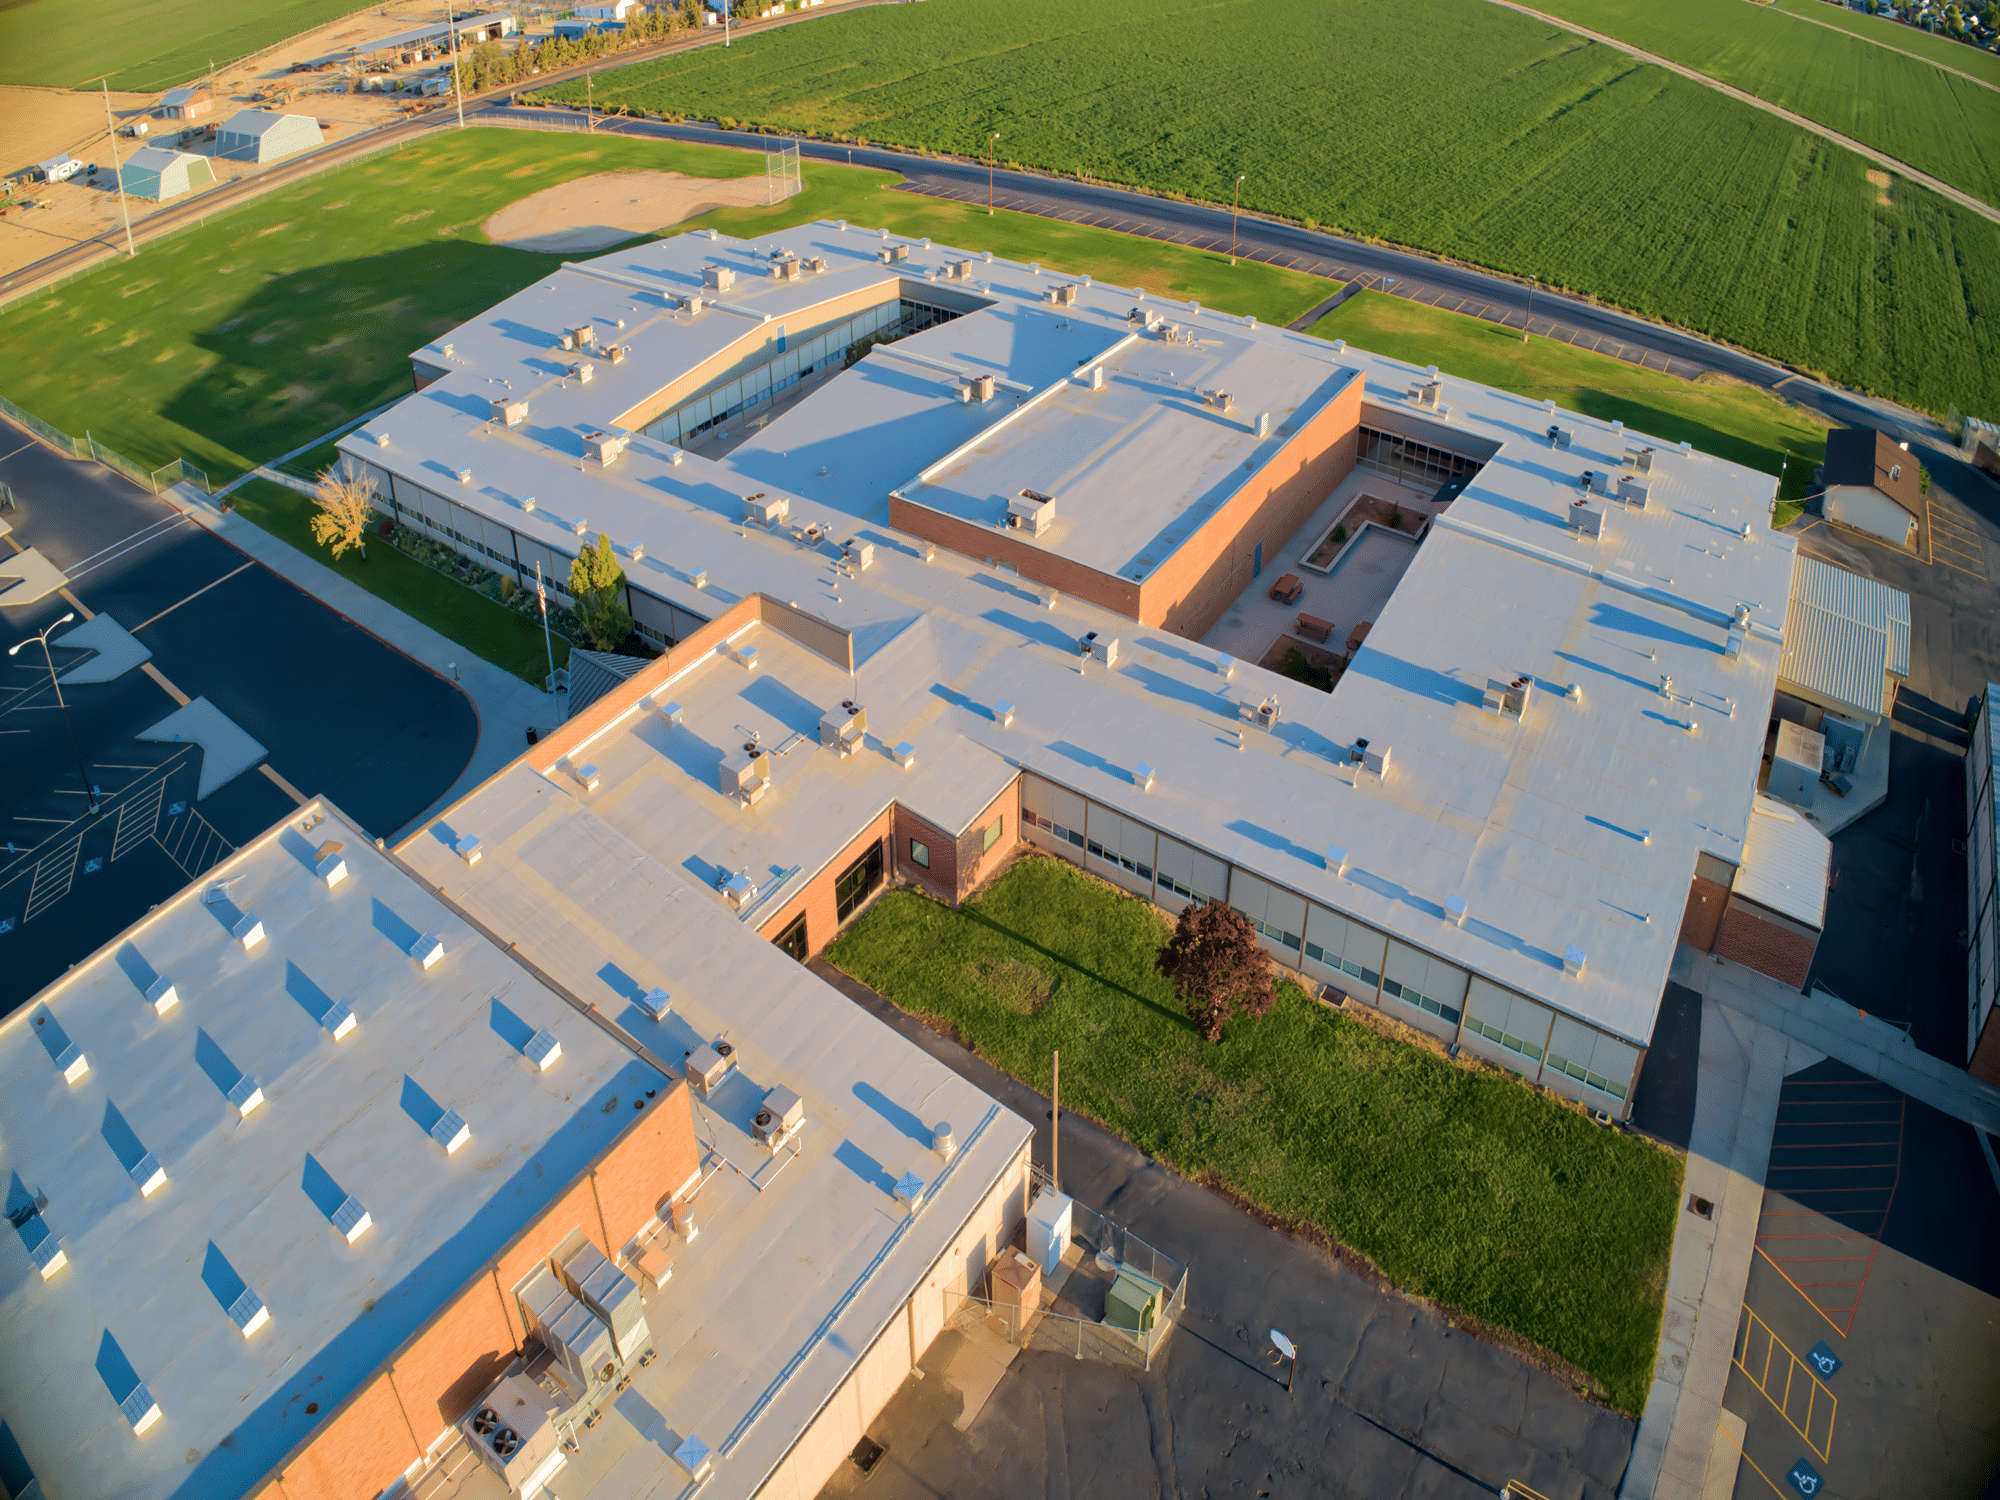 Valley View Middle School